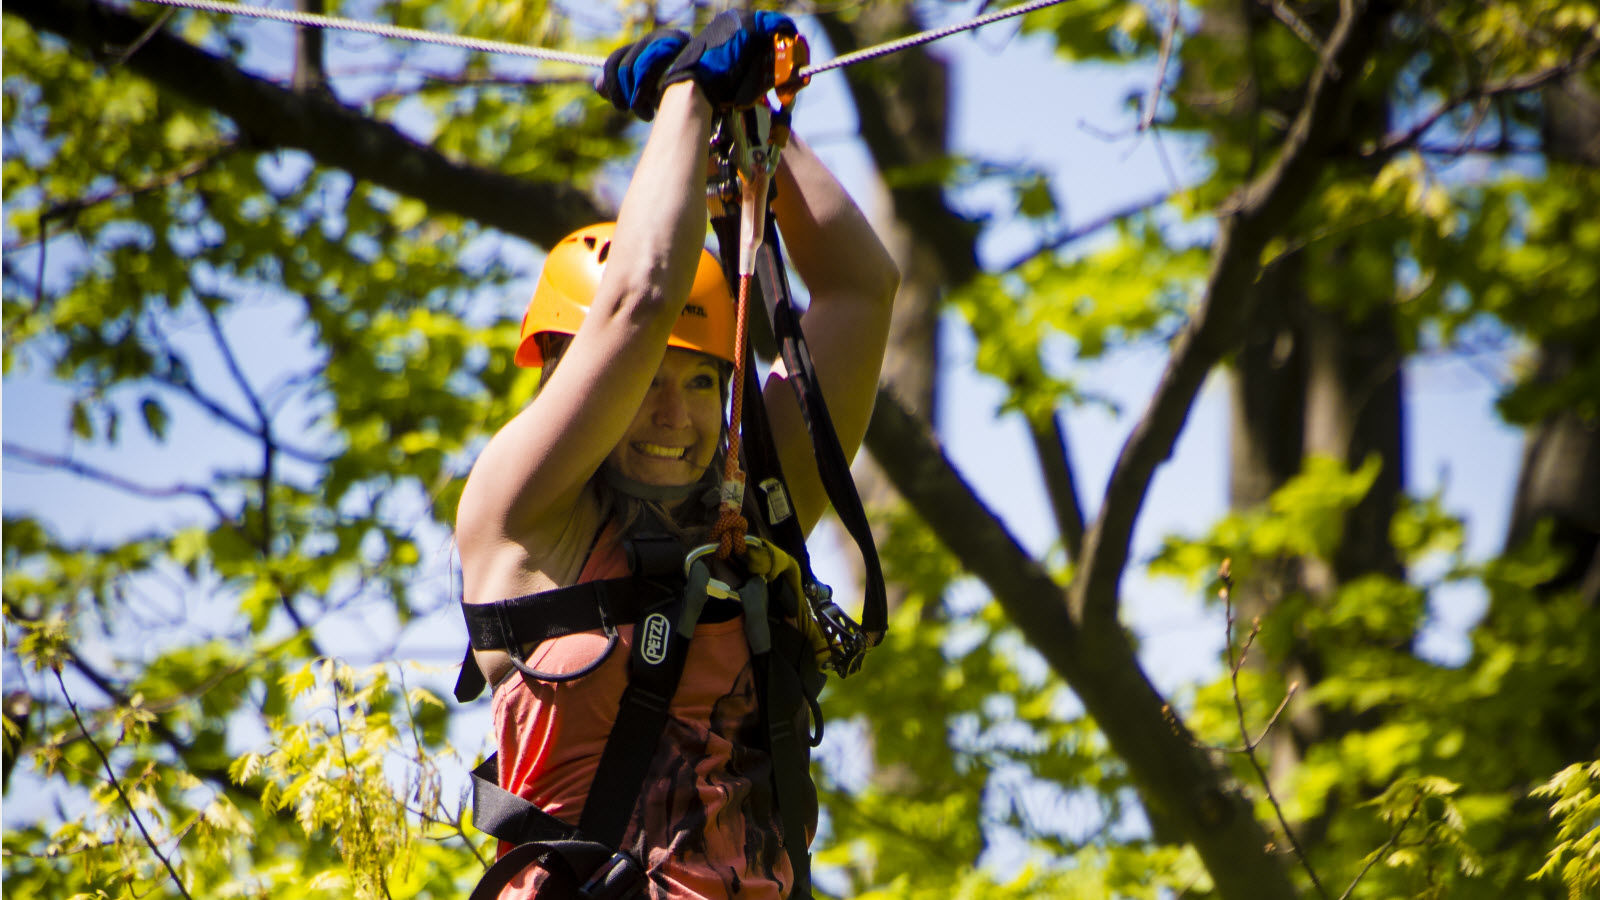 Blue Mountain Fall Activities - Zip Line